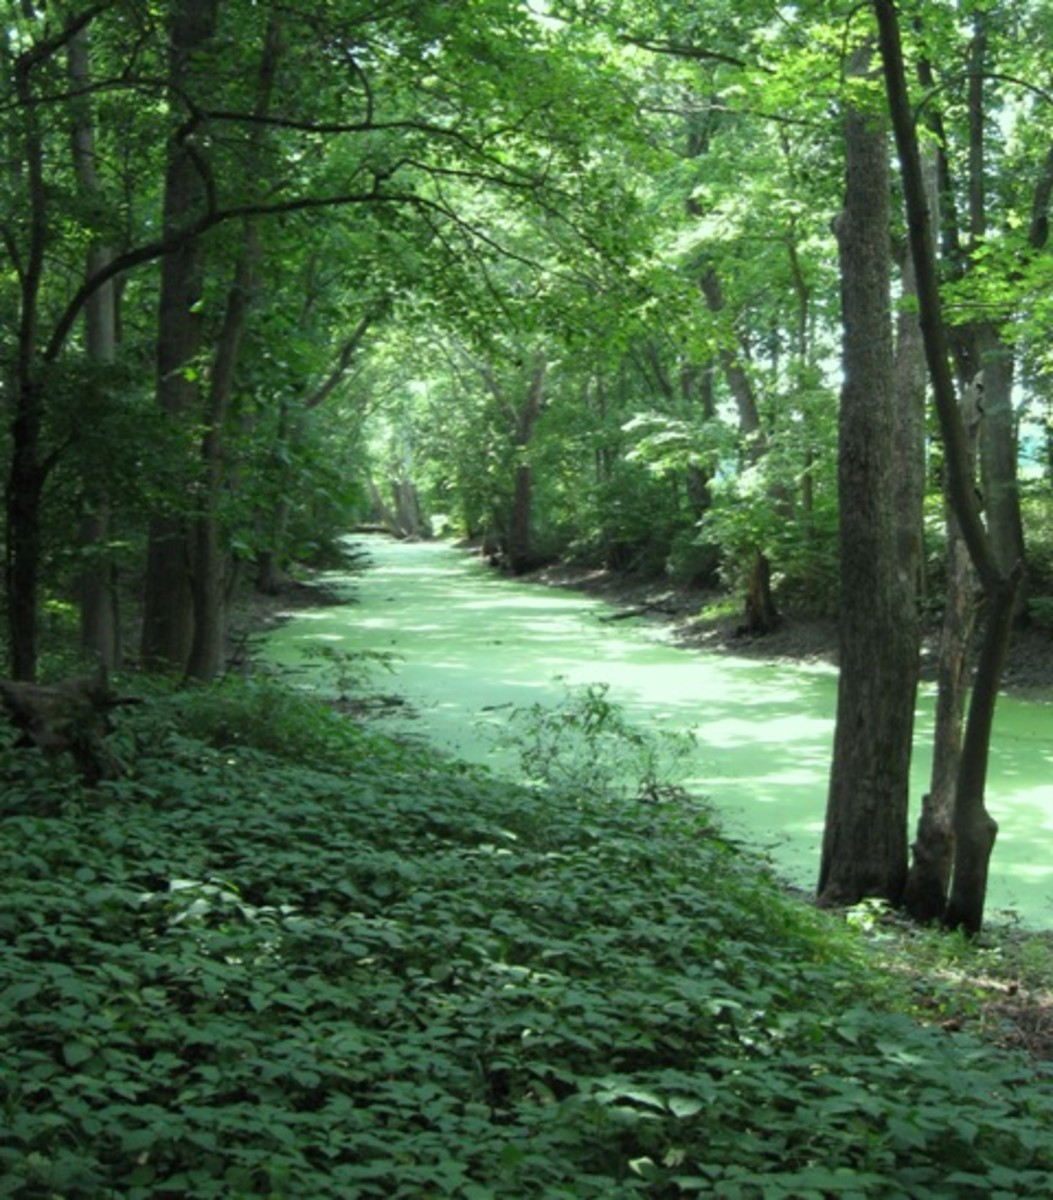 delphi-indiana-canal